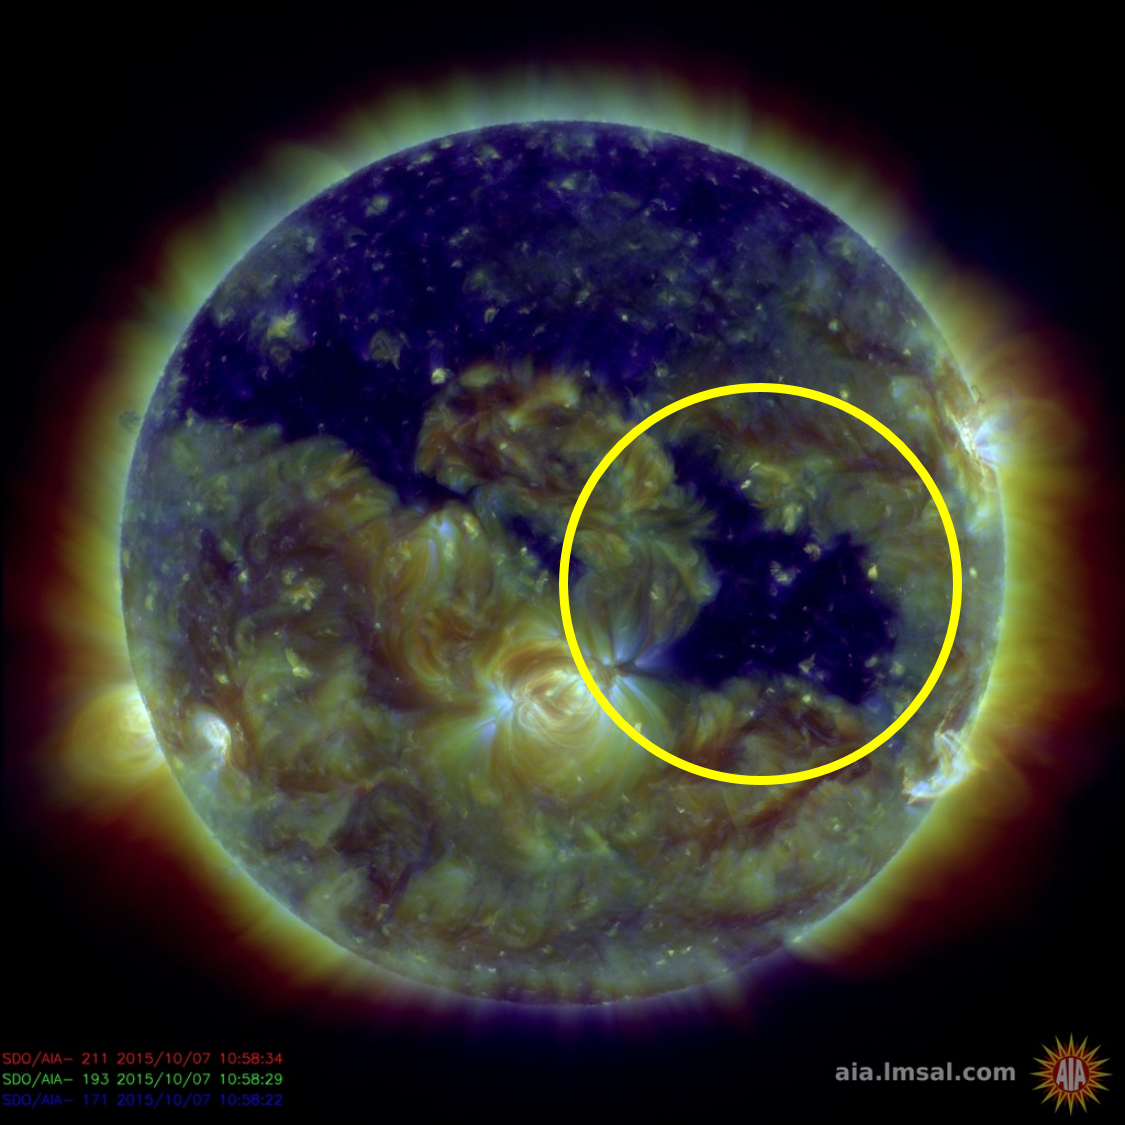 Image of the Sun from the Solar Dynamic Observatory showing the Coronal hole (SDO/NASA)